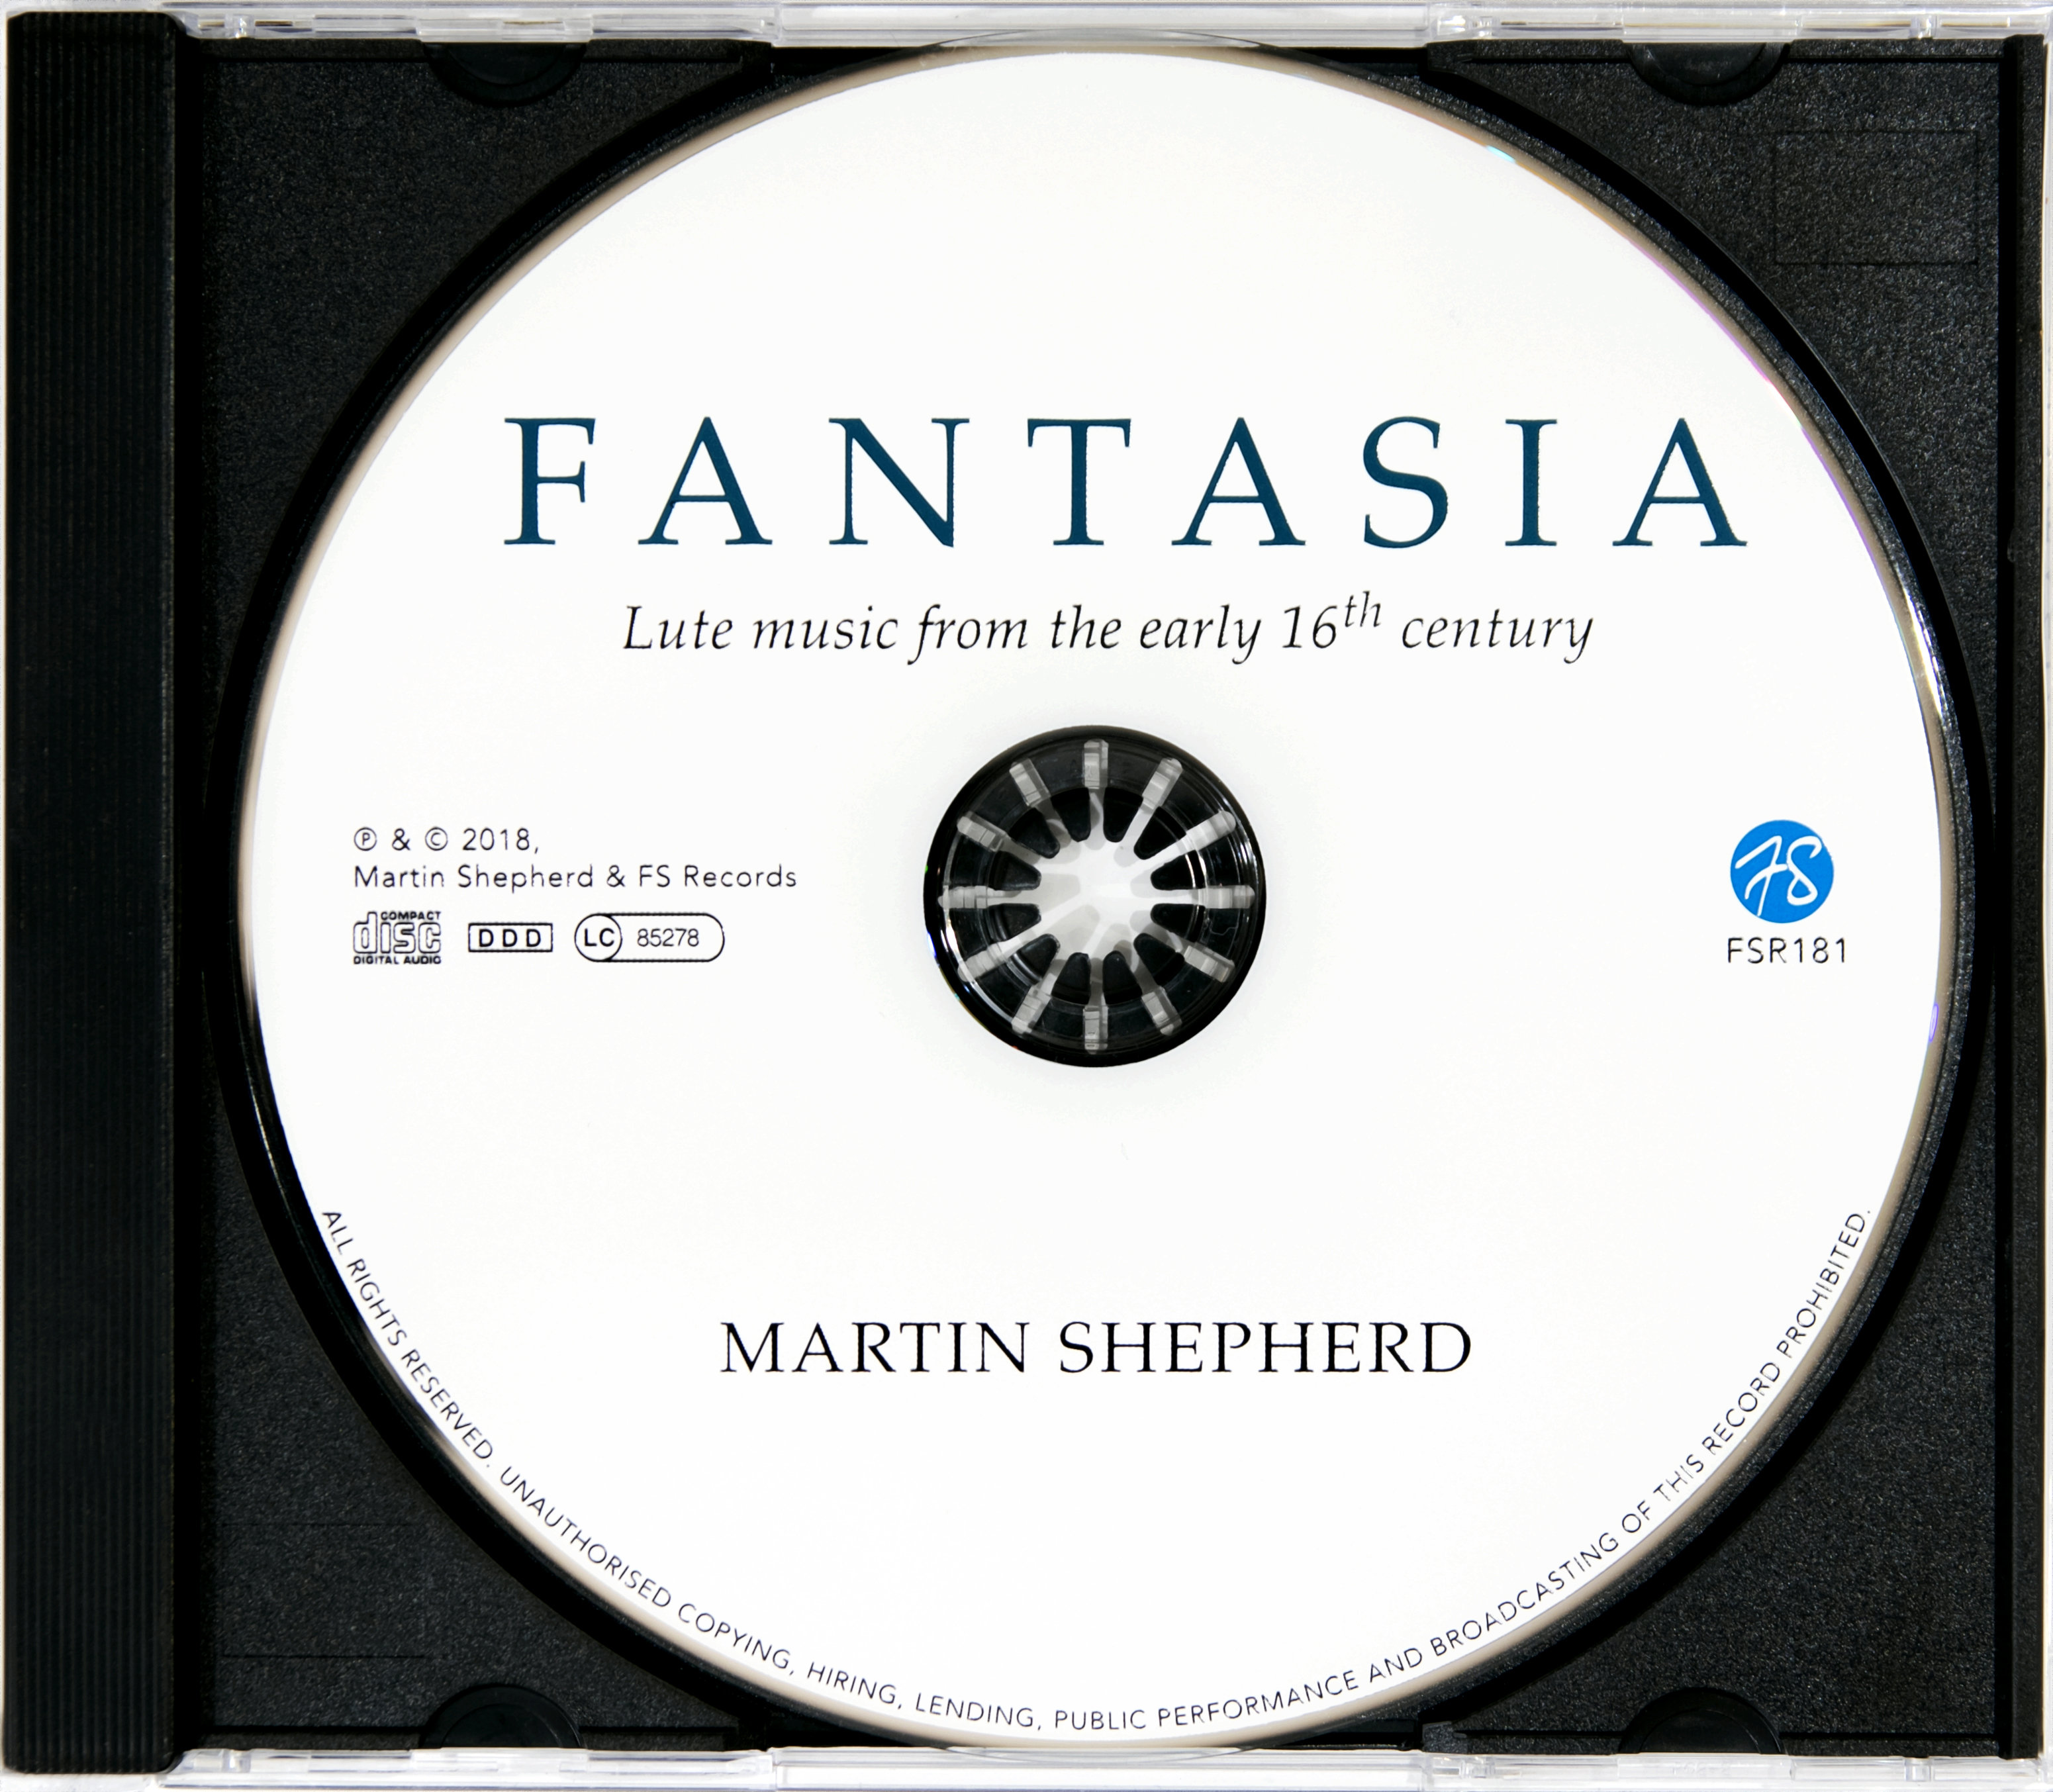 Fantasia: Lute music from the early 16th century